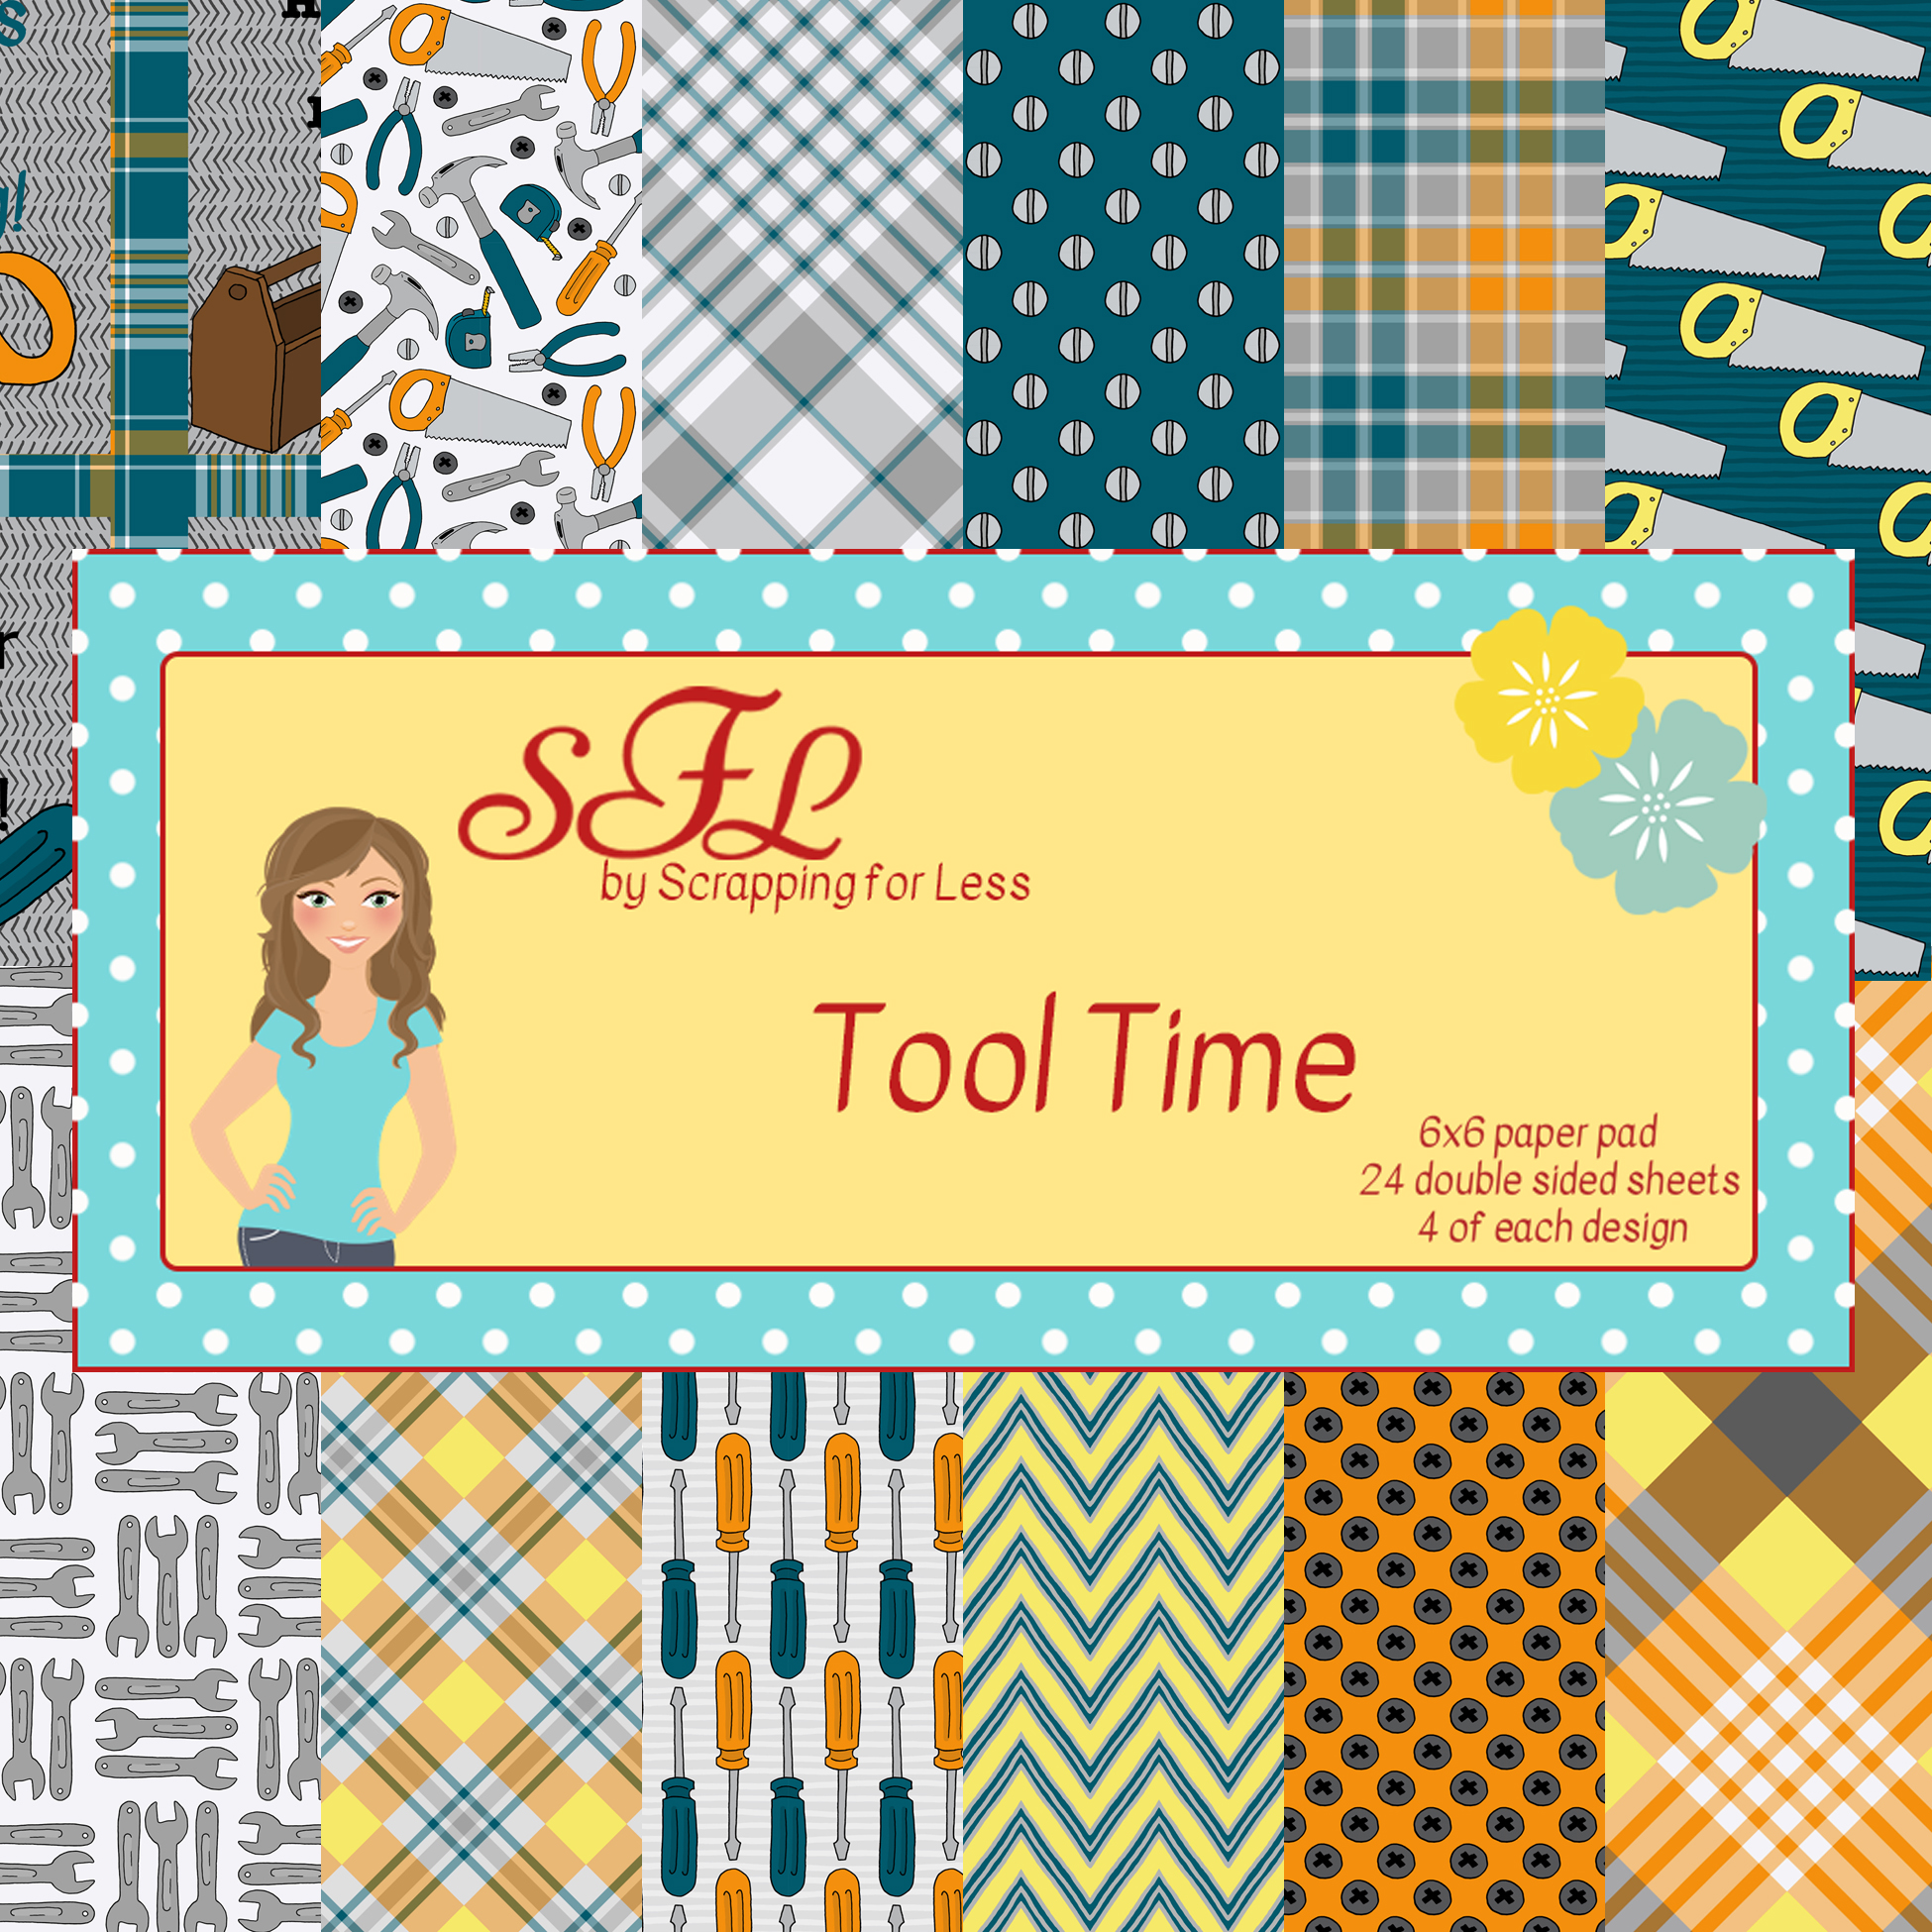 Scrapping for Less Tool Time 6x6 Paper Pad